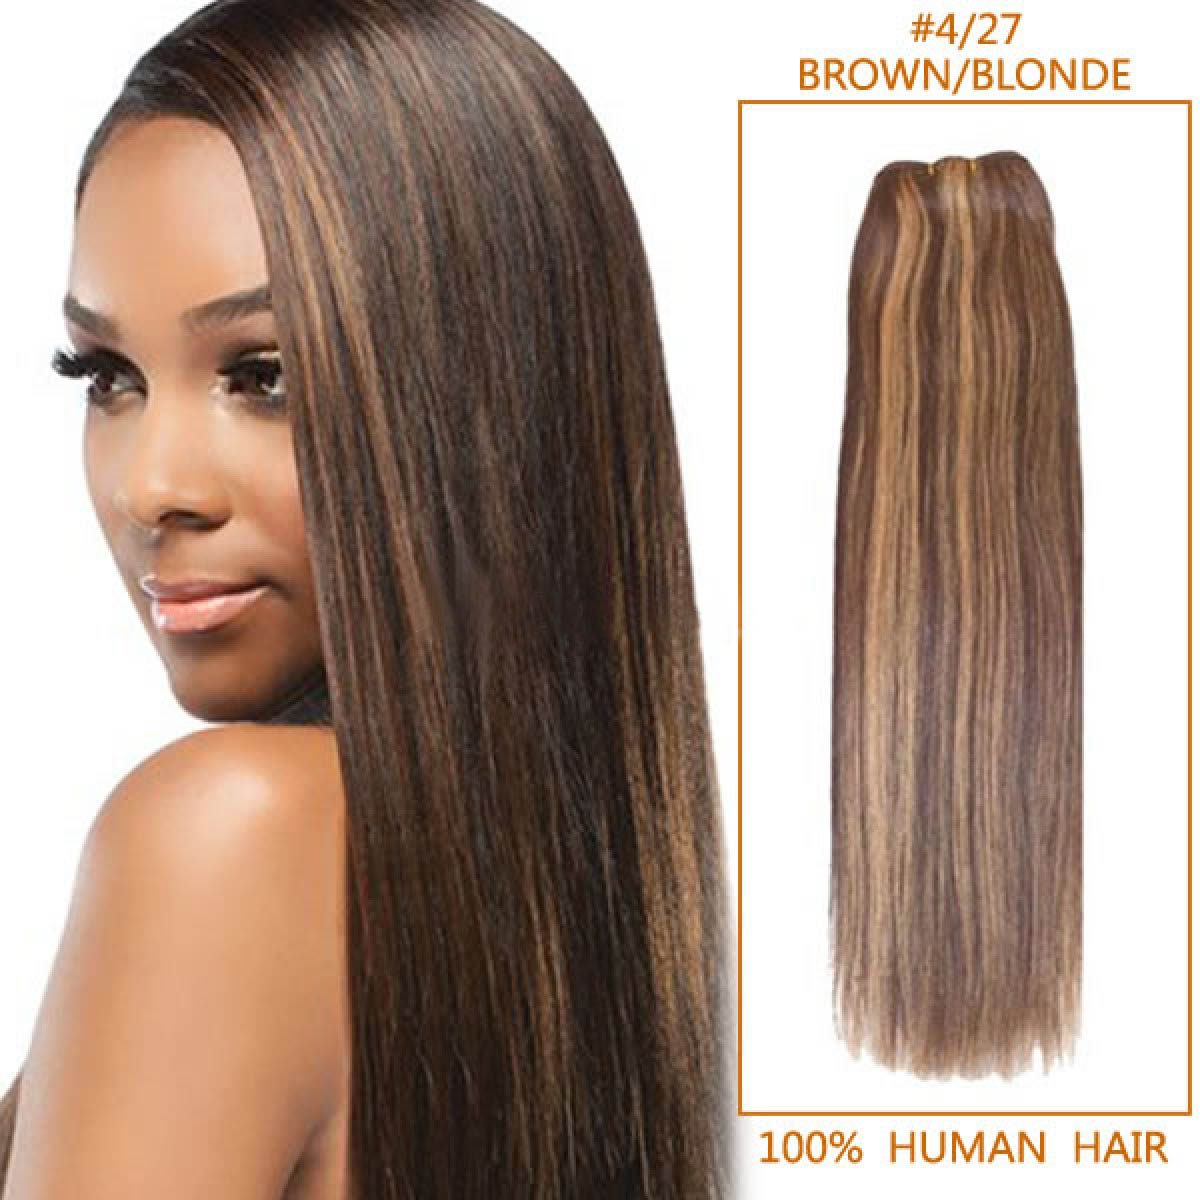 18 Inch 4 27 Brown Blonde Straight Indian Remy Hair Wefts